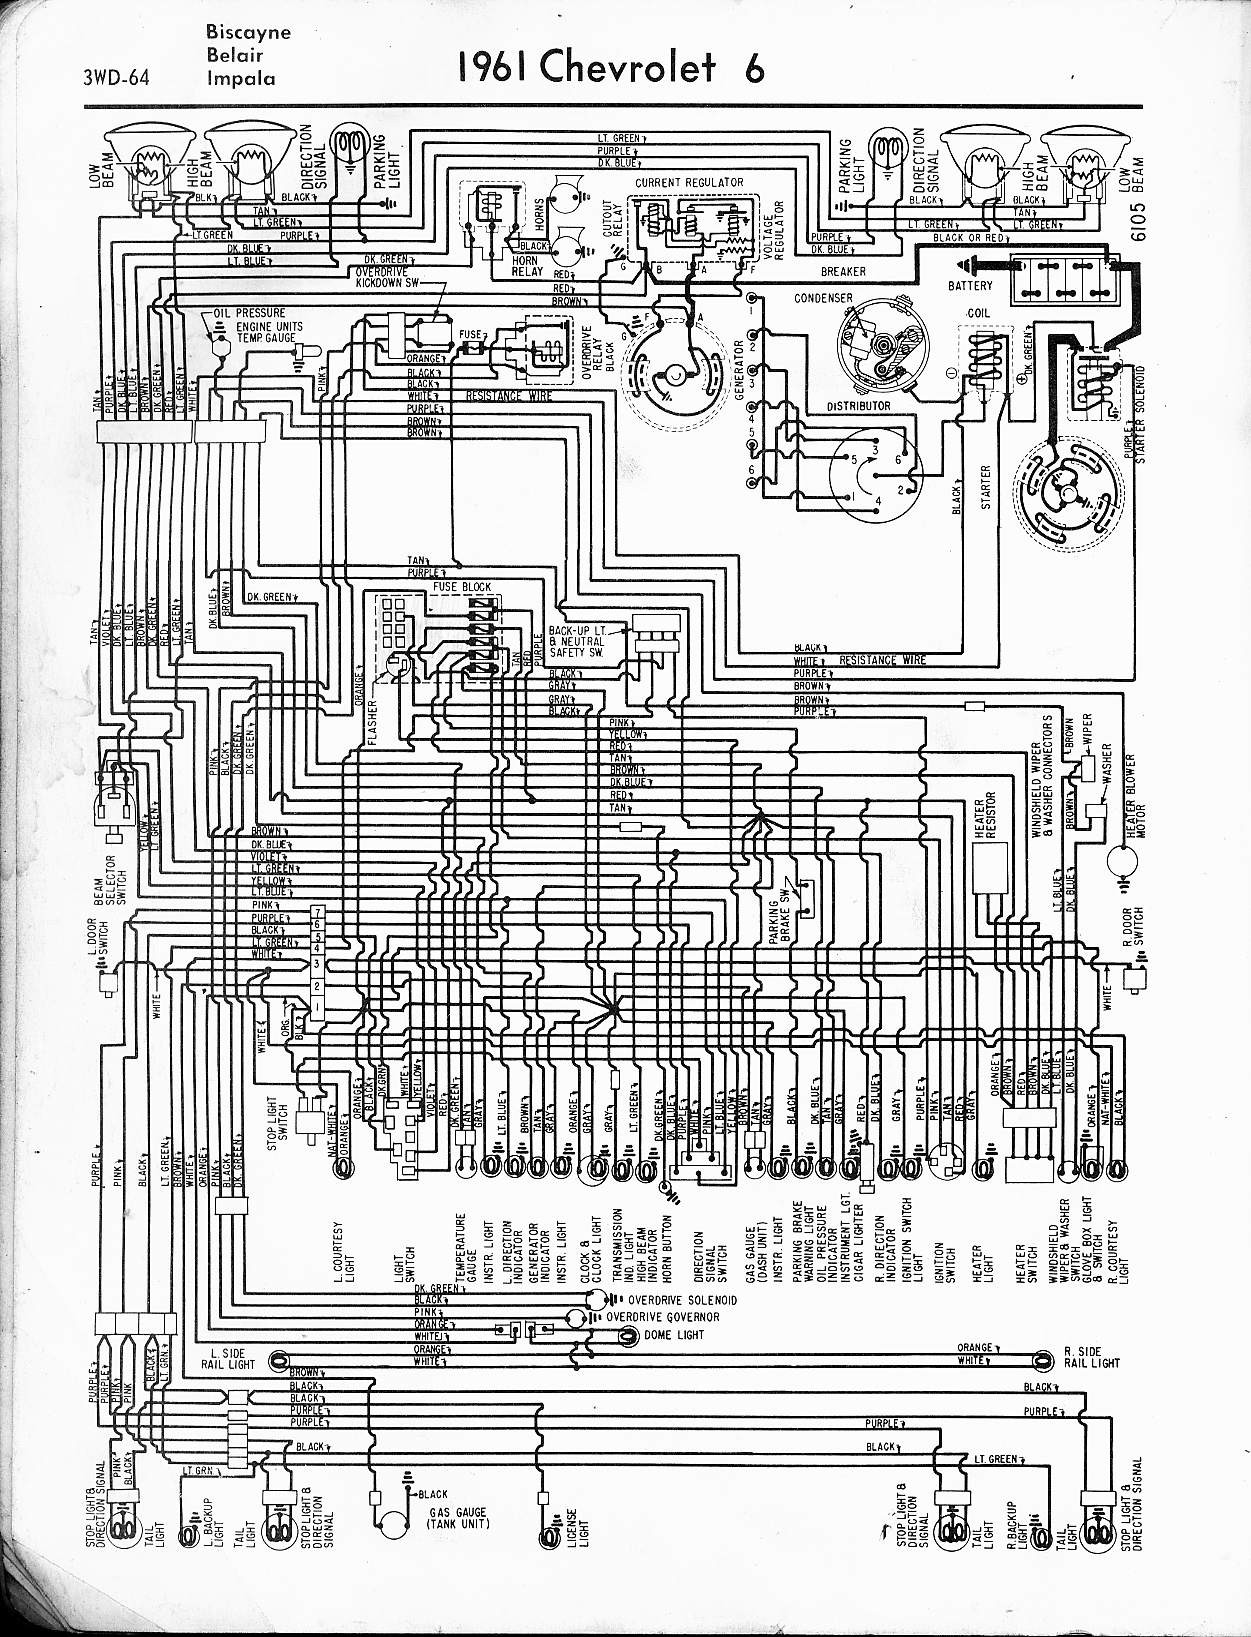 2001 Chevy Impala Engine Diagram 57 65 Chevy Wiring Diagrams Of 2001 Chevy Impala Engine Diagram